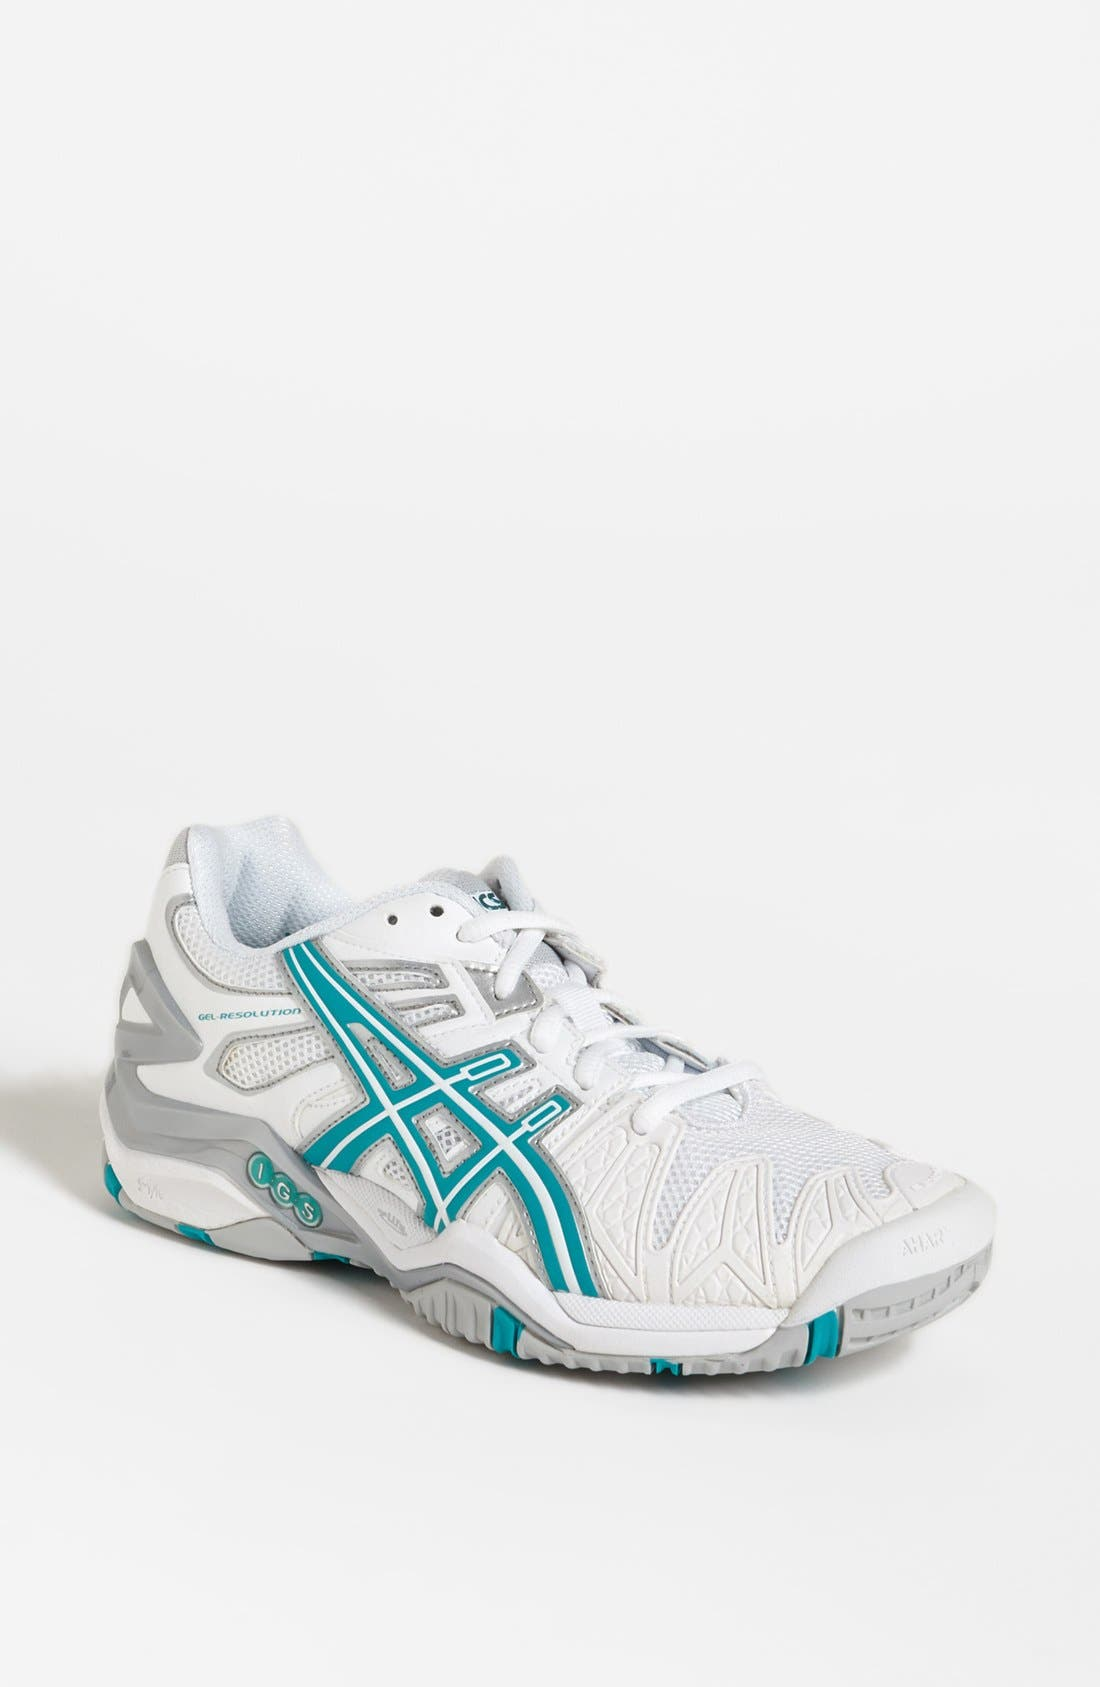 Alternate Image 1 Selected - ASICS® 'GEL-Resolution 5' Tennis Shoe (Women)(Regular Retail Price: $139.95)